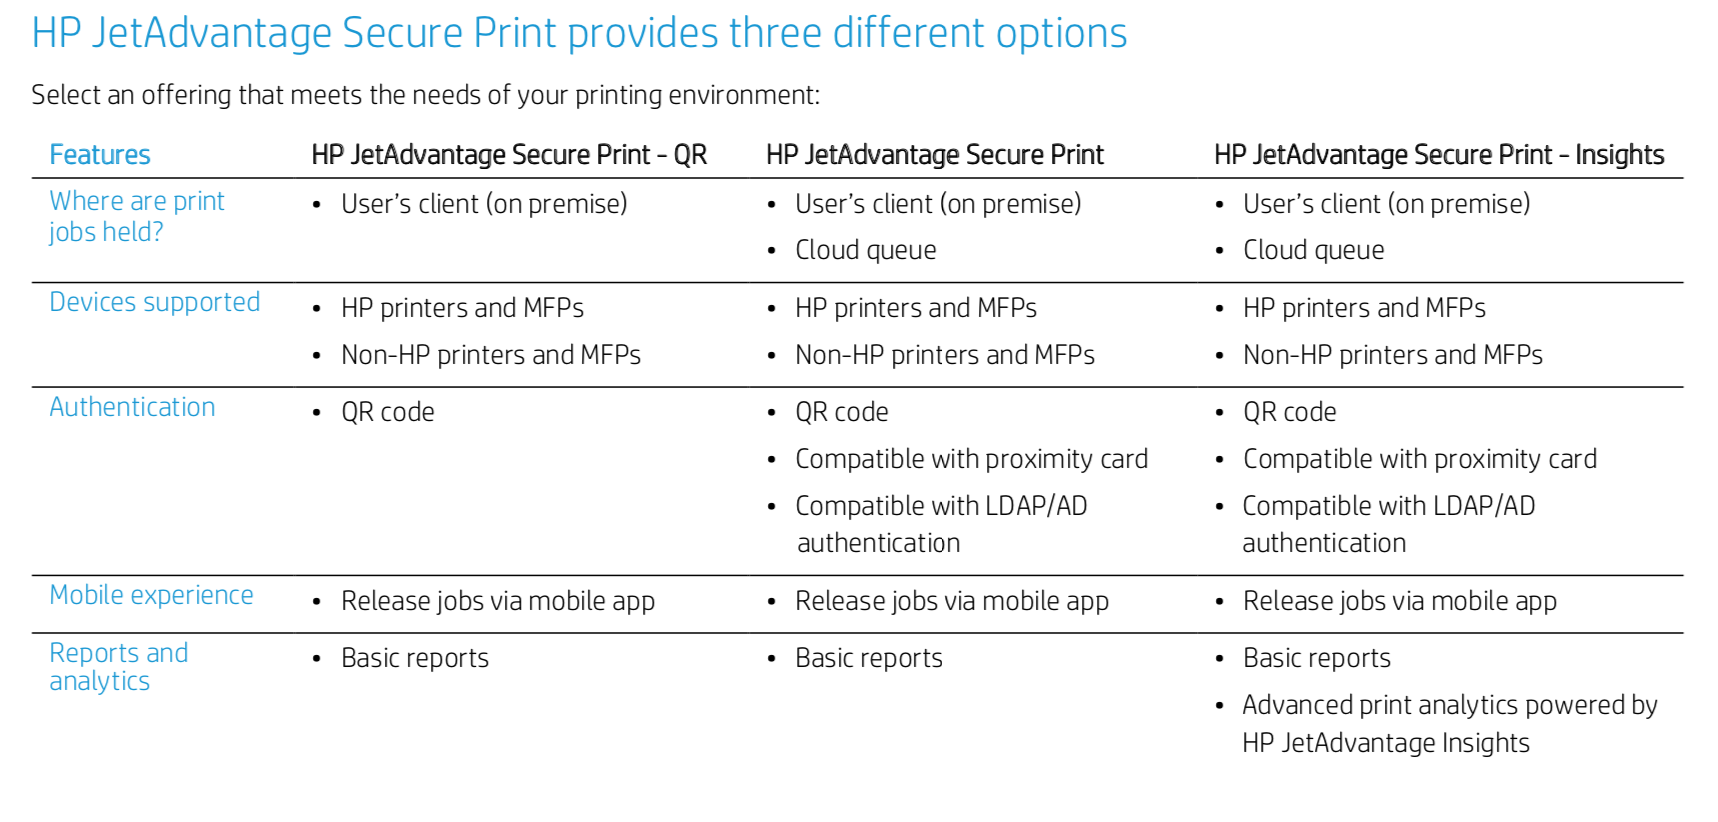 HP JetAdvatage Secure Print provides three different options